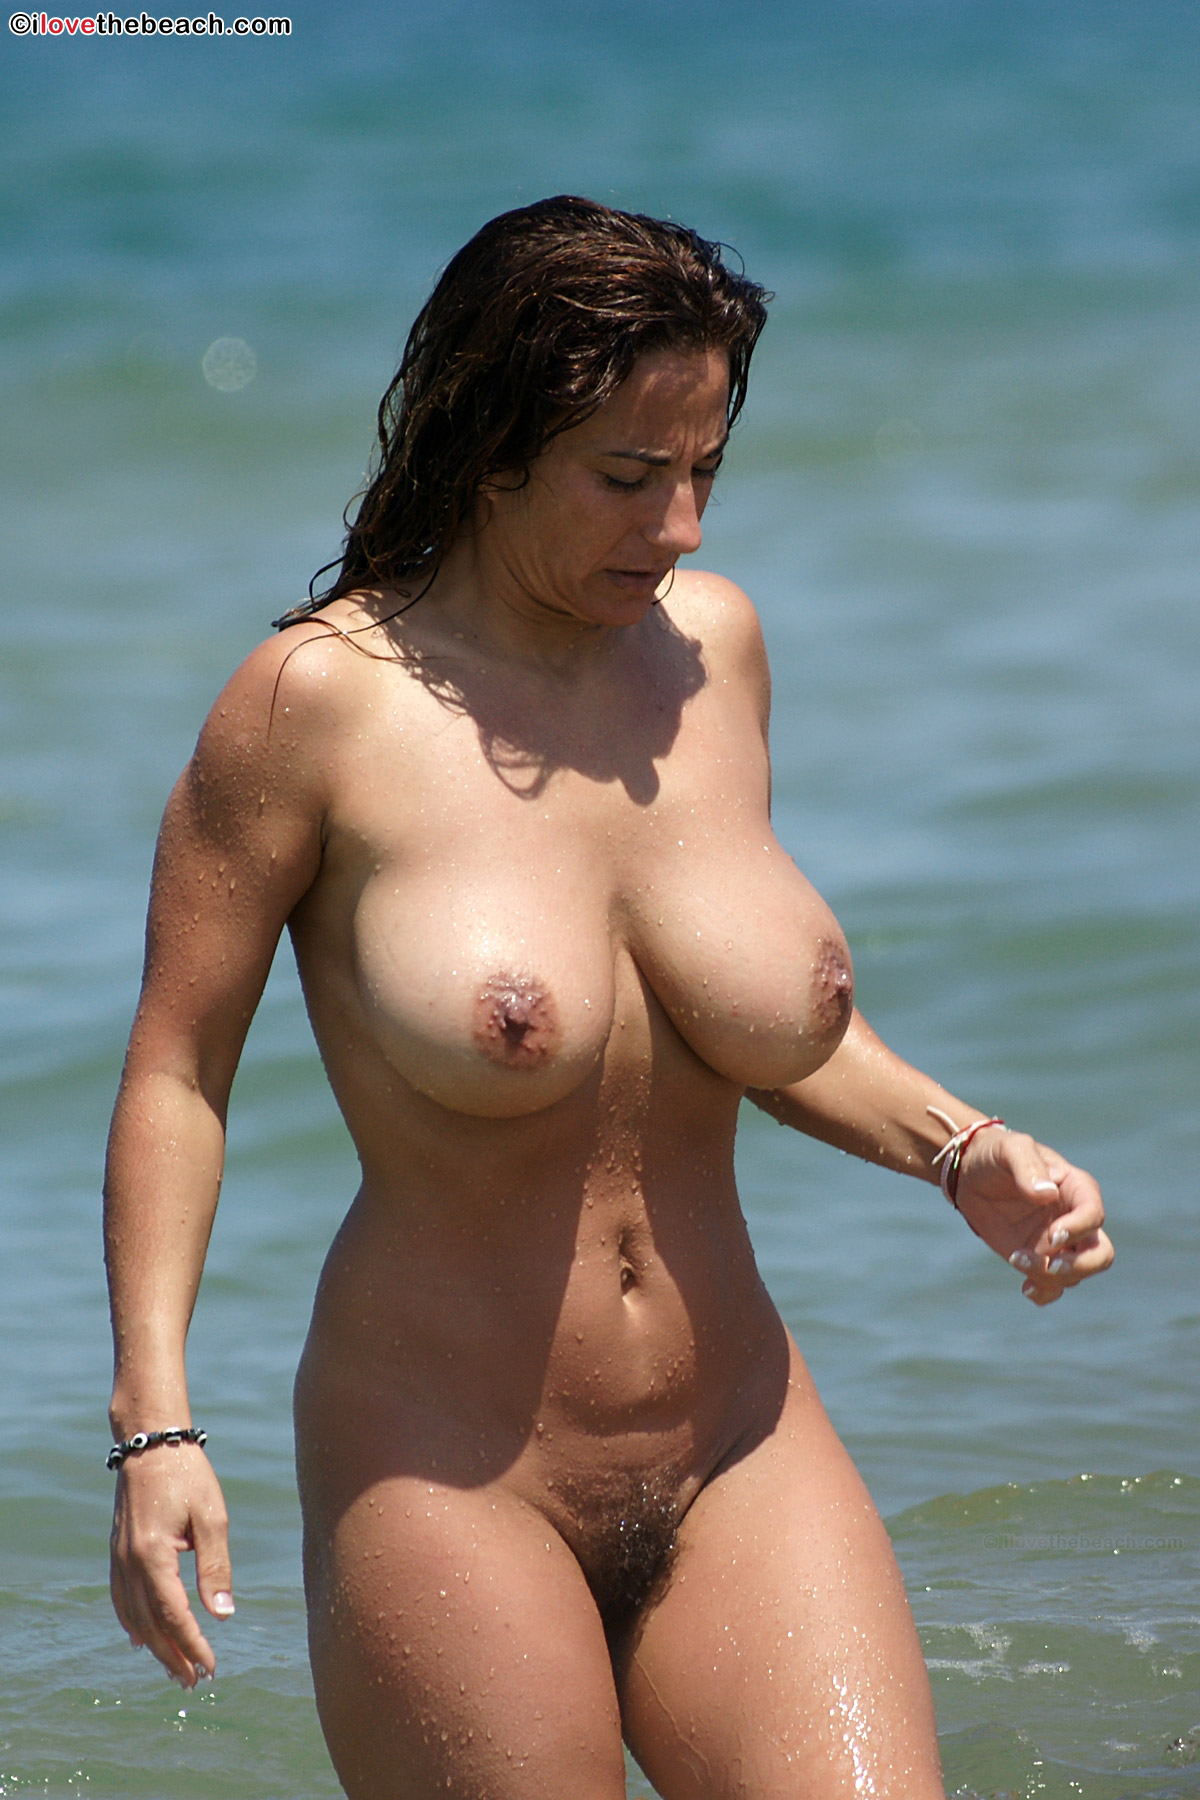 Squeezing busty nude babes on beach — 1